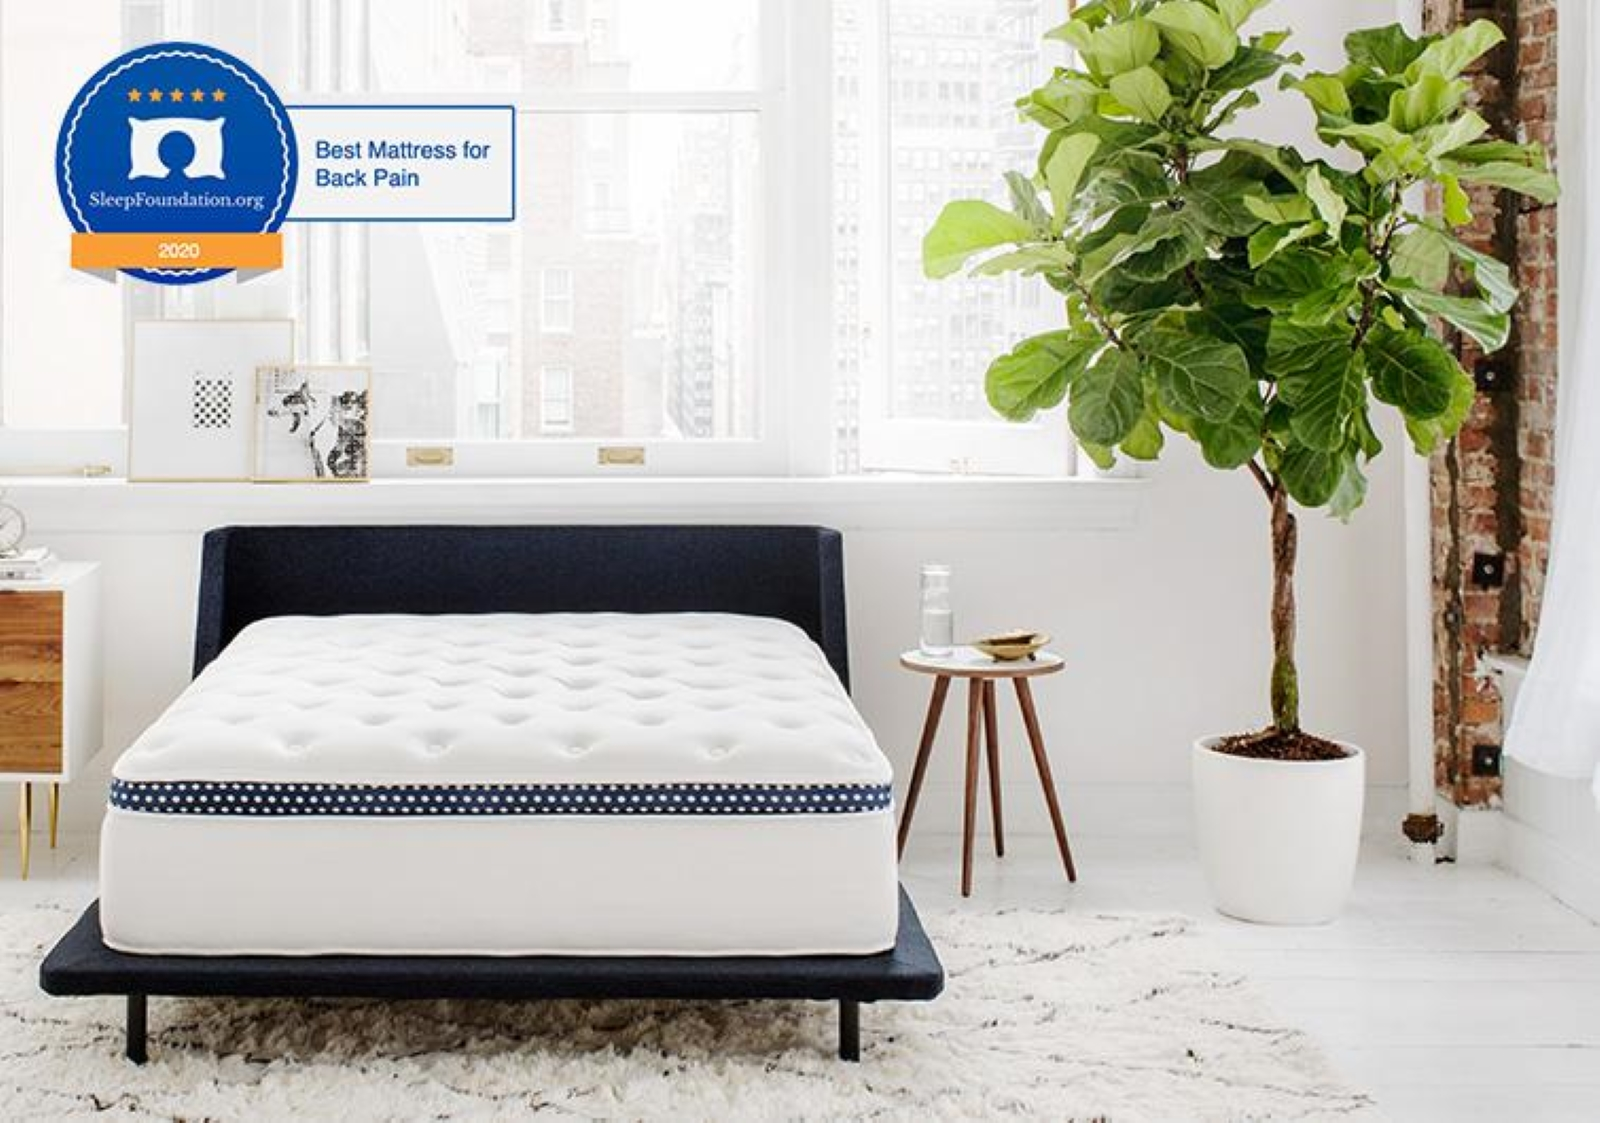 Wink Bed mattress on a dark bed frame in a room with a primarily white background with a tree in the corner and photos above the bed in front of the window